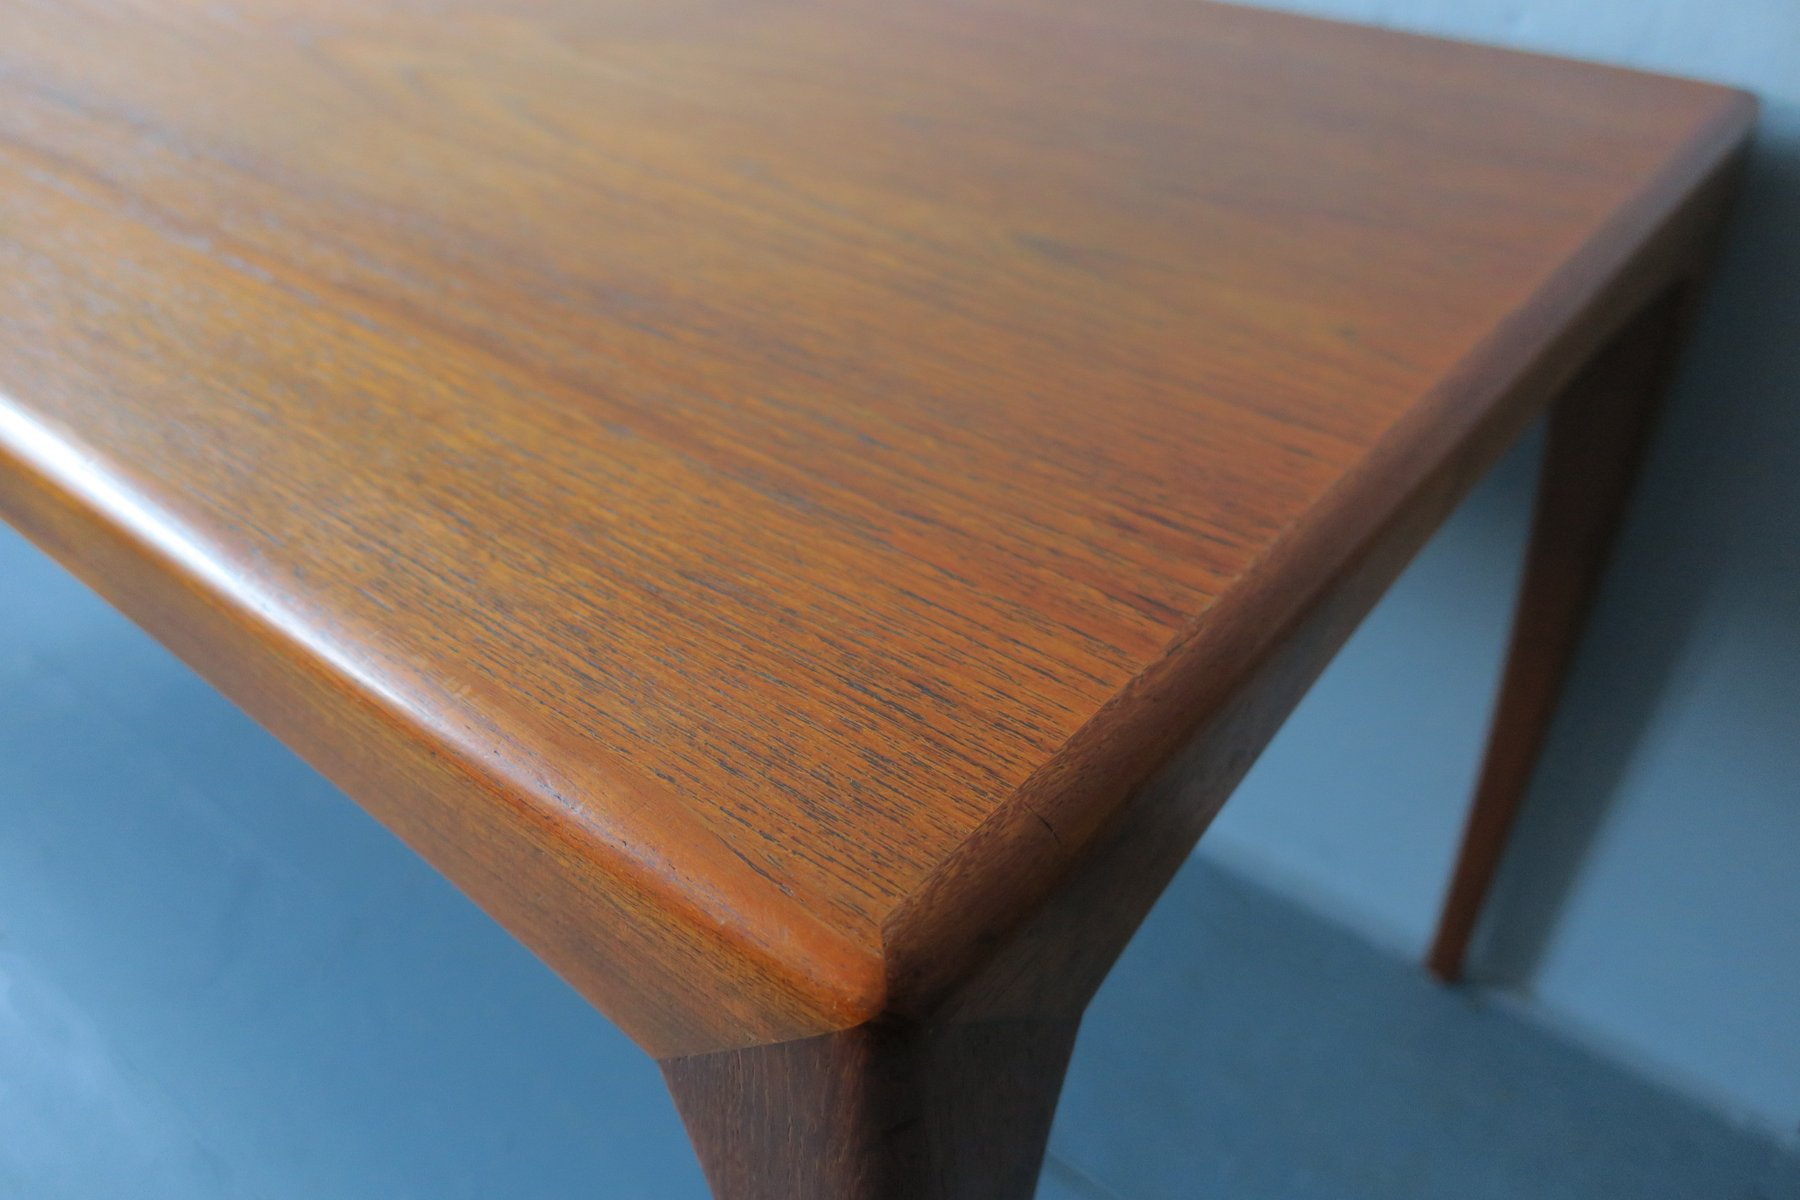 Mid Century Modern Danish Teak Coffee Table 1960s for sale at Pamono